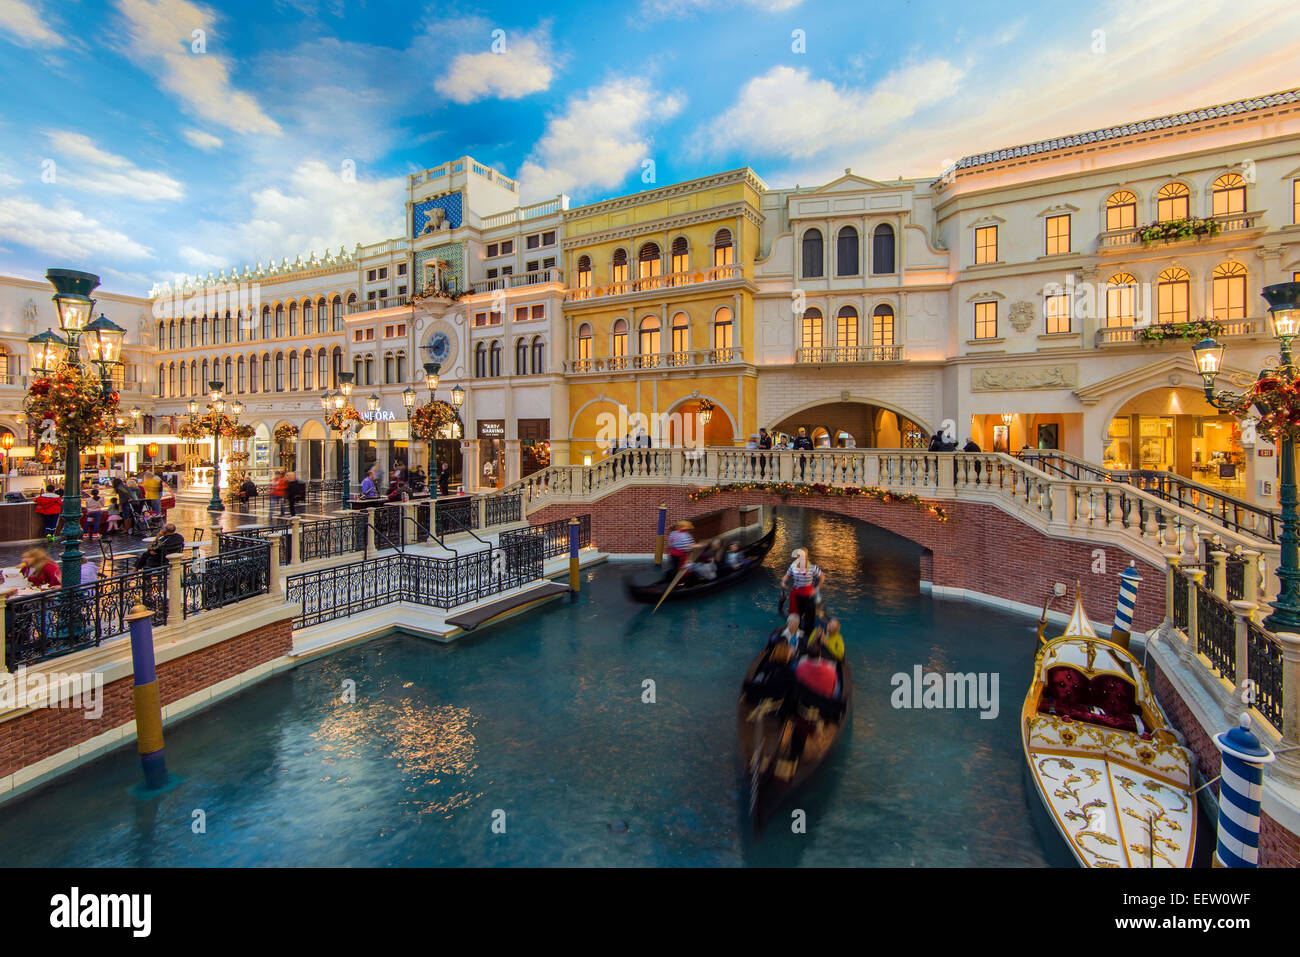 Canal Shoppes Venetian Hotel Map Pictures To Pin On Pinterest - Map of las vegas venetian